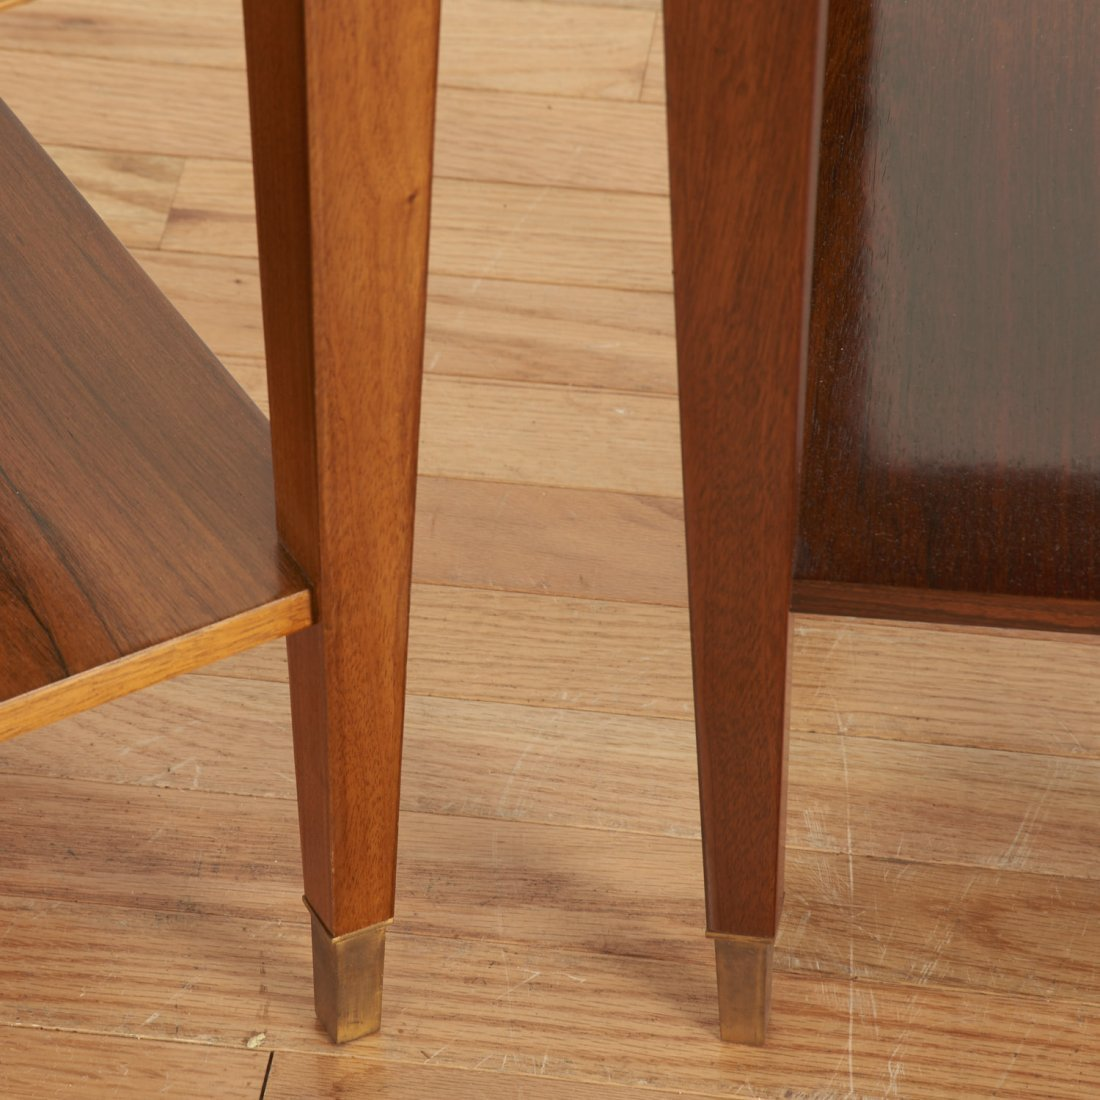 Manner Maxime Old near pair side tables - 7